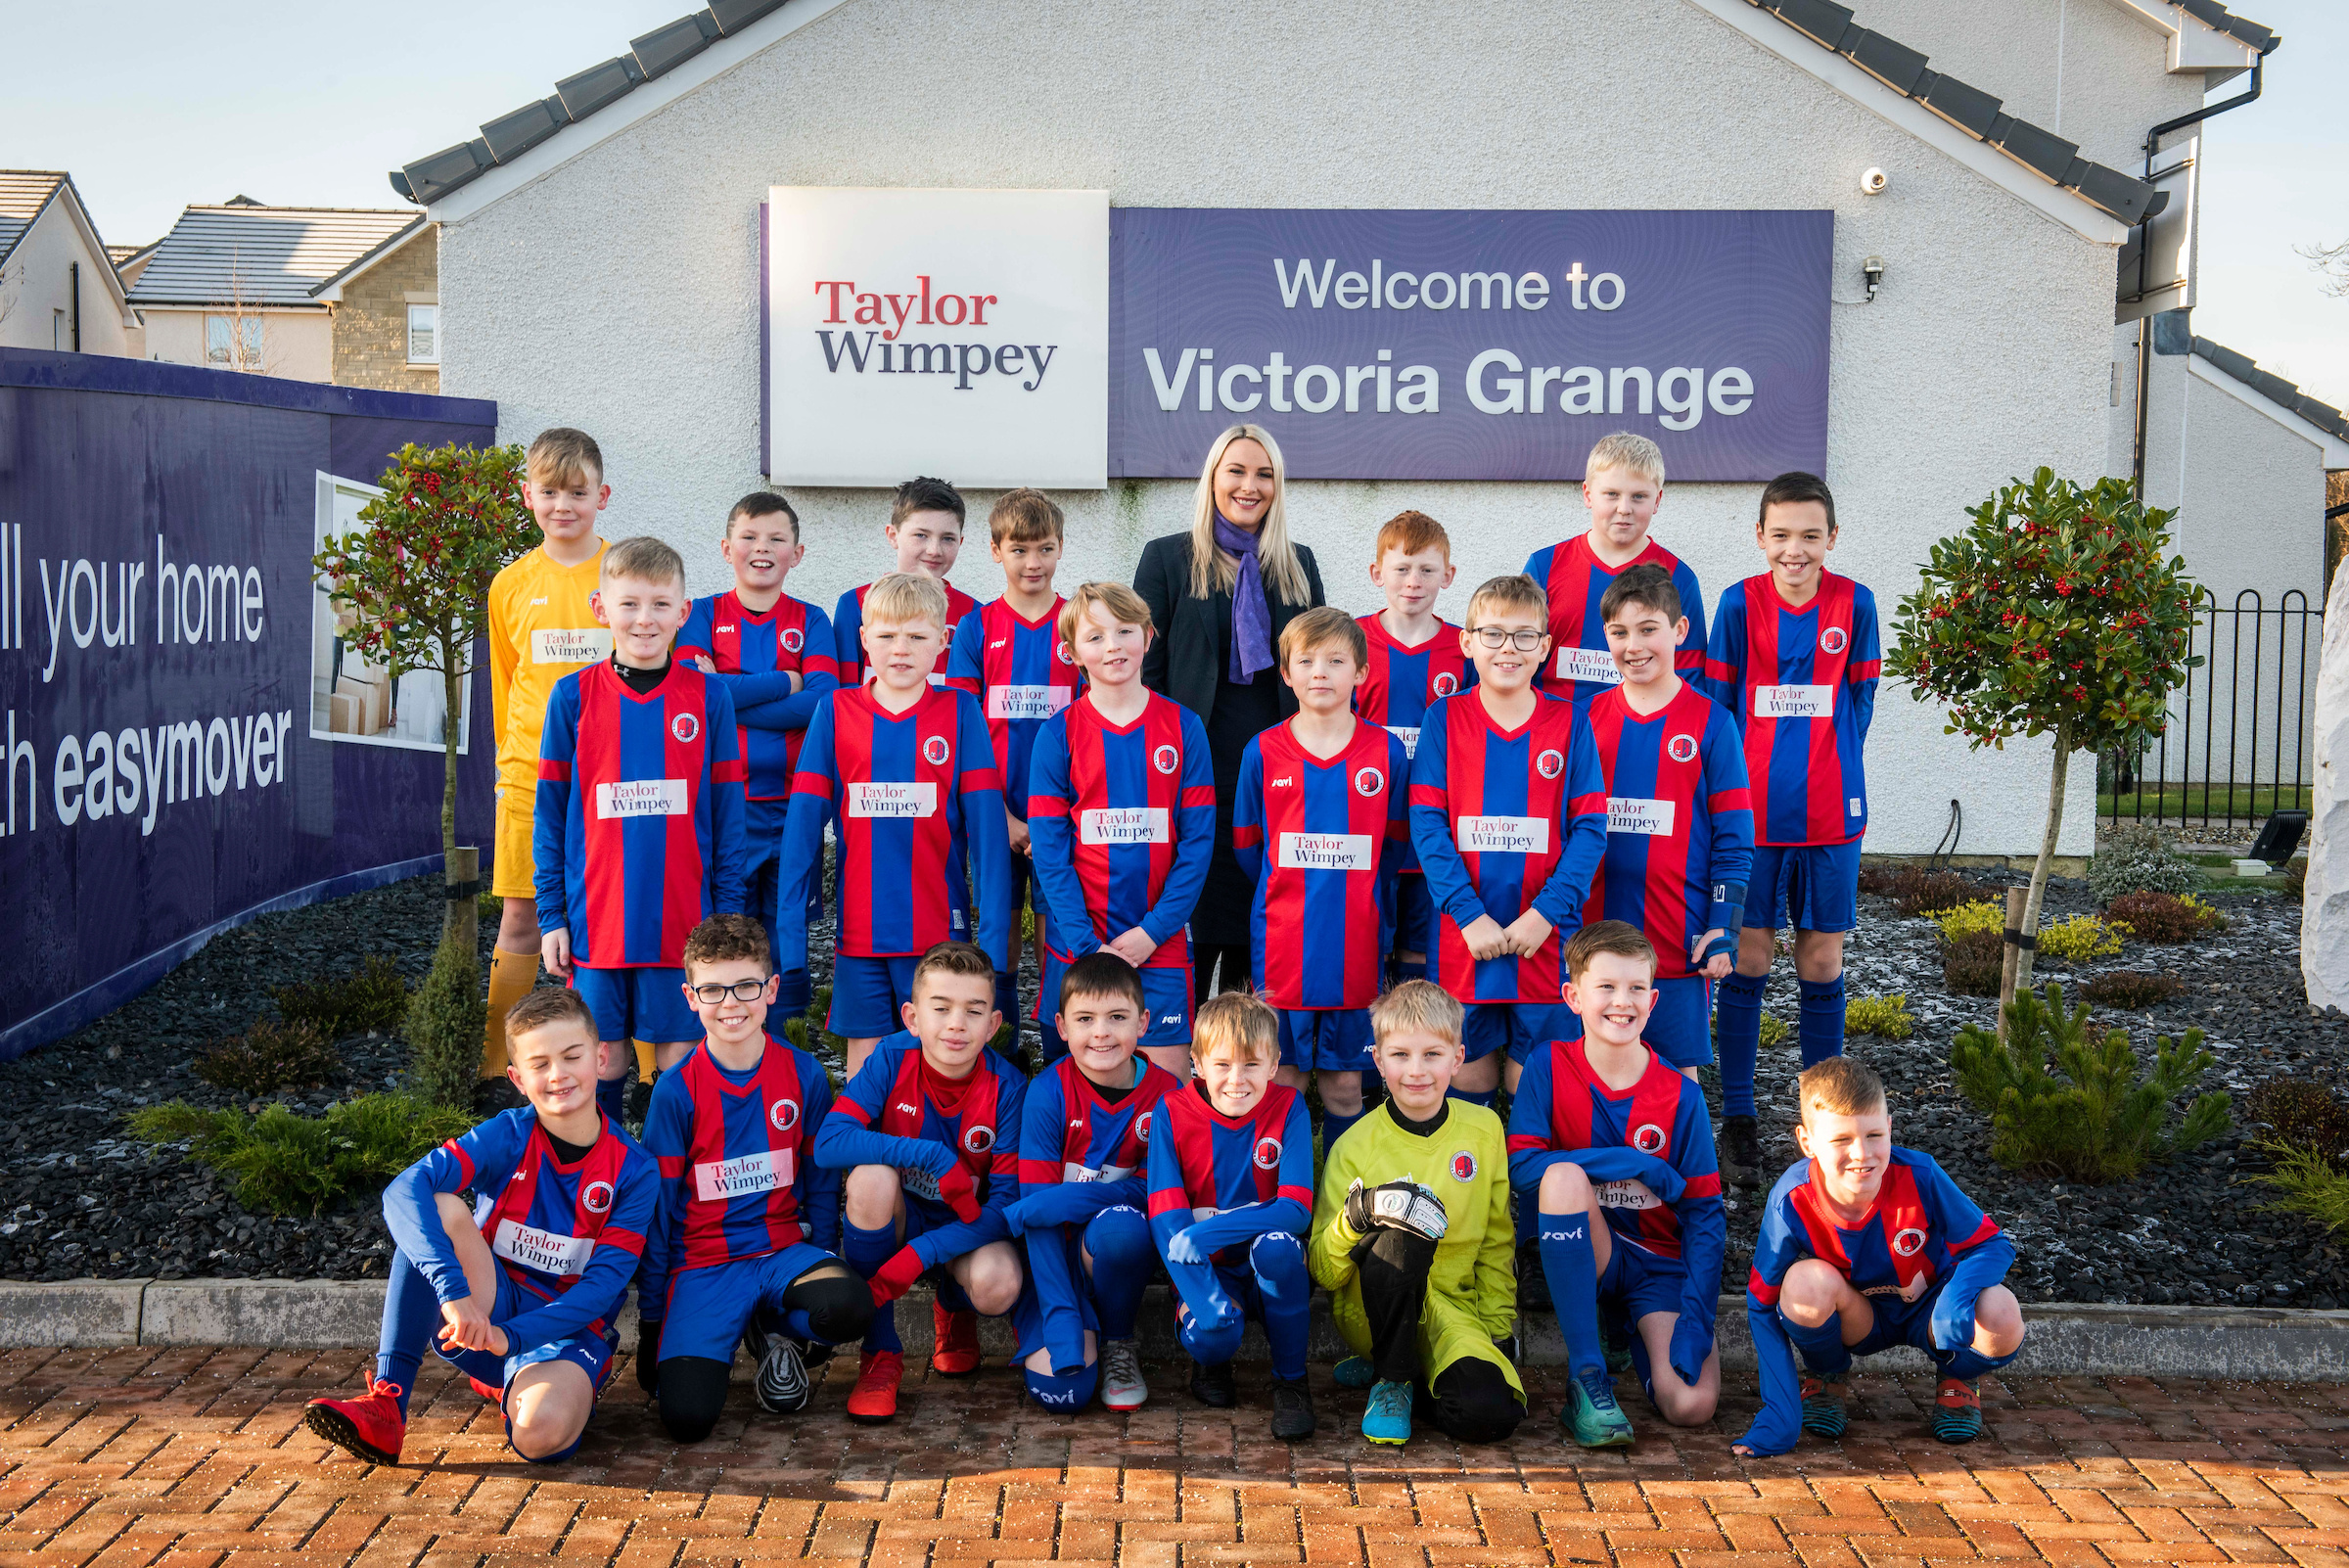 Victoria Grange Local Football Team 1